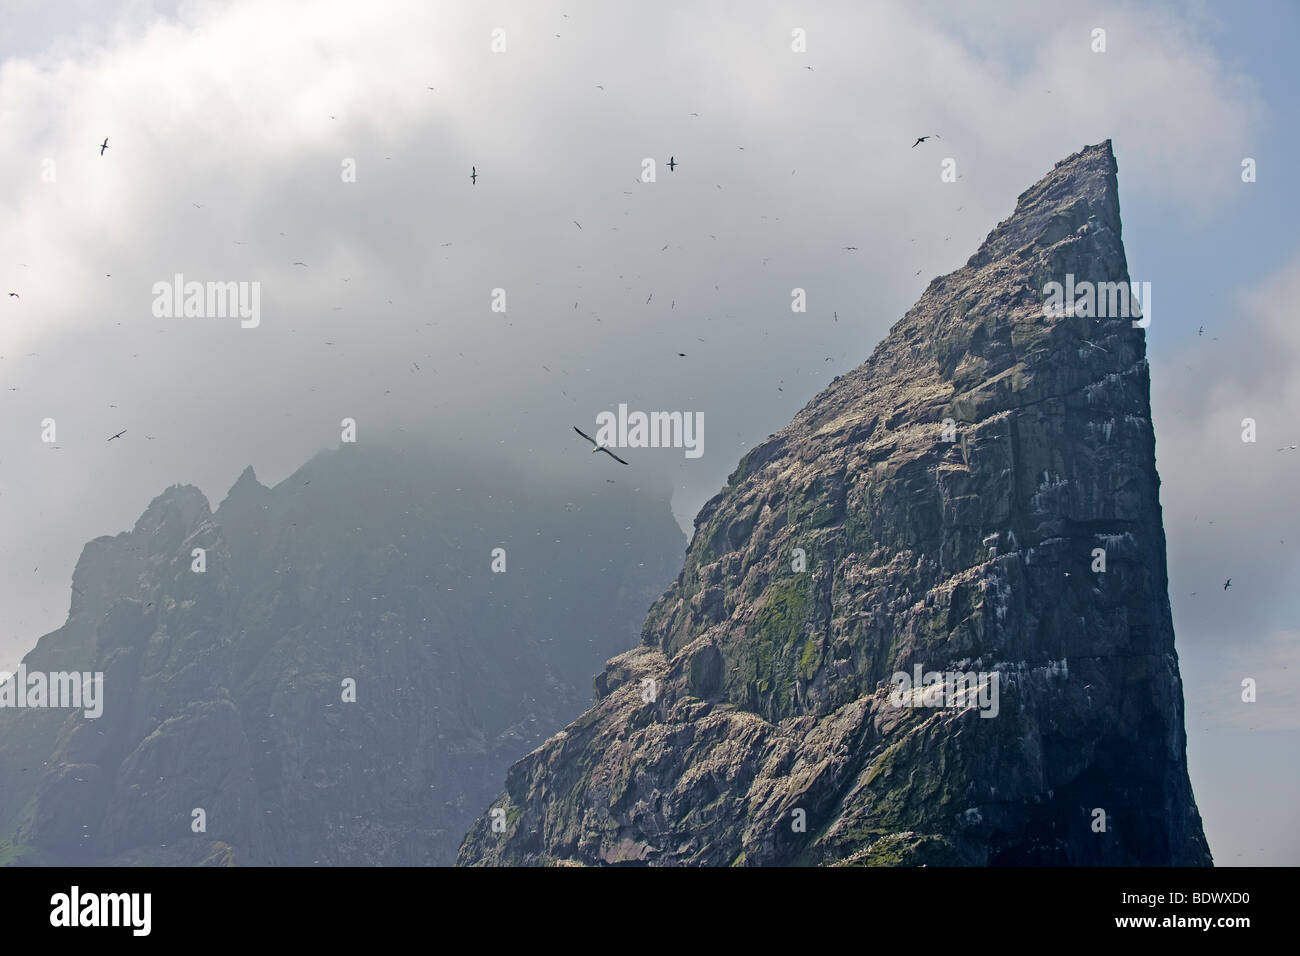 Islands of Stac an Armin and Boreray in the Saint Kilda archipelago, surrounded by northern gannets Morus bassanus. - Stock Image